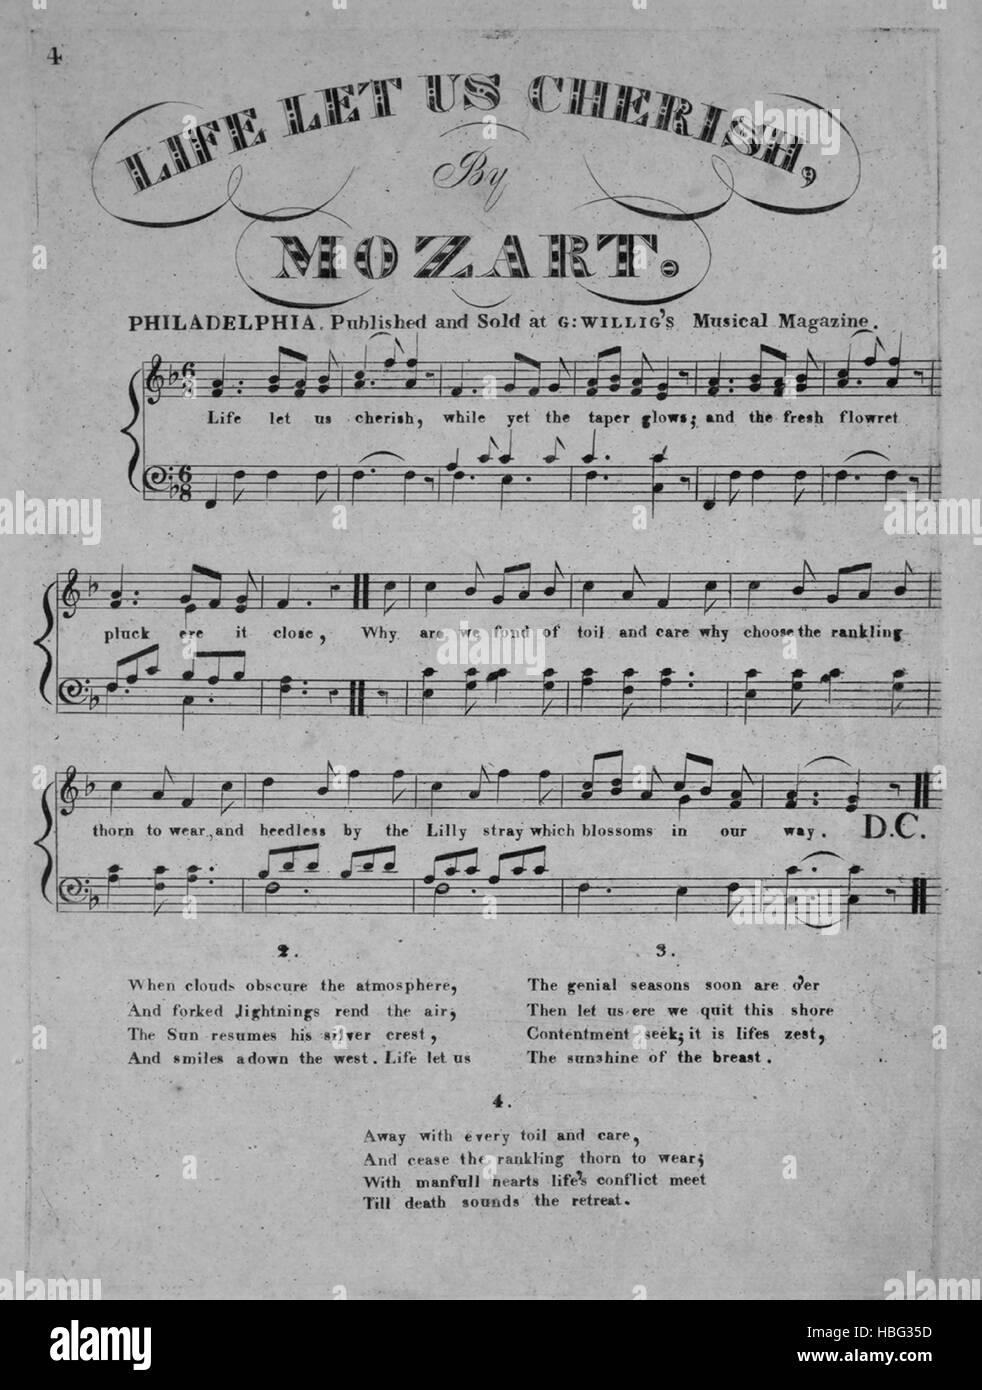 Sheet music cover image of the song 'Life Let Us Cherish (1) Song (2) With Variations by Mozart', with original - Stock Image